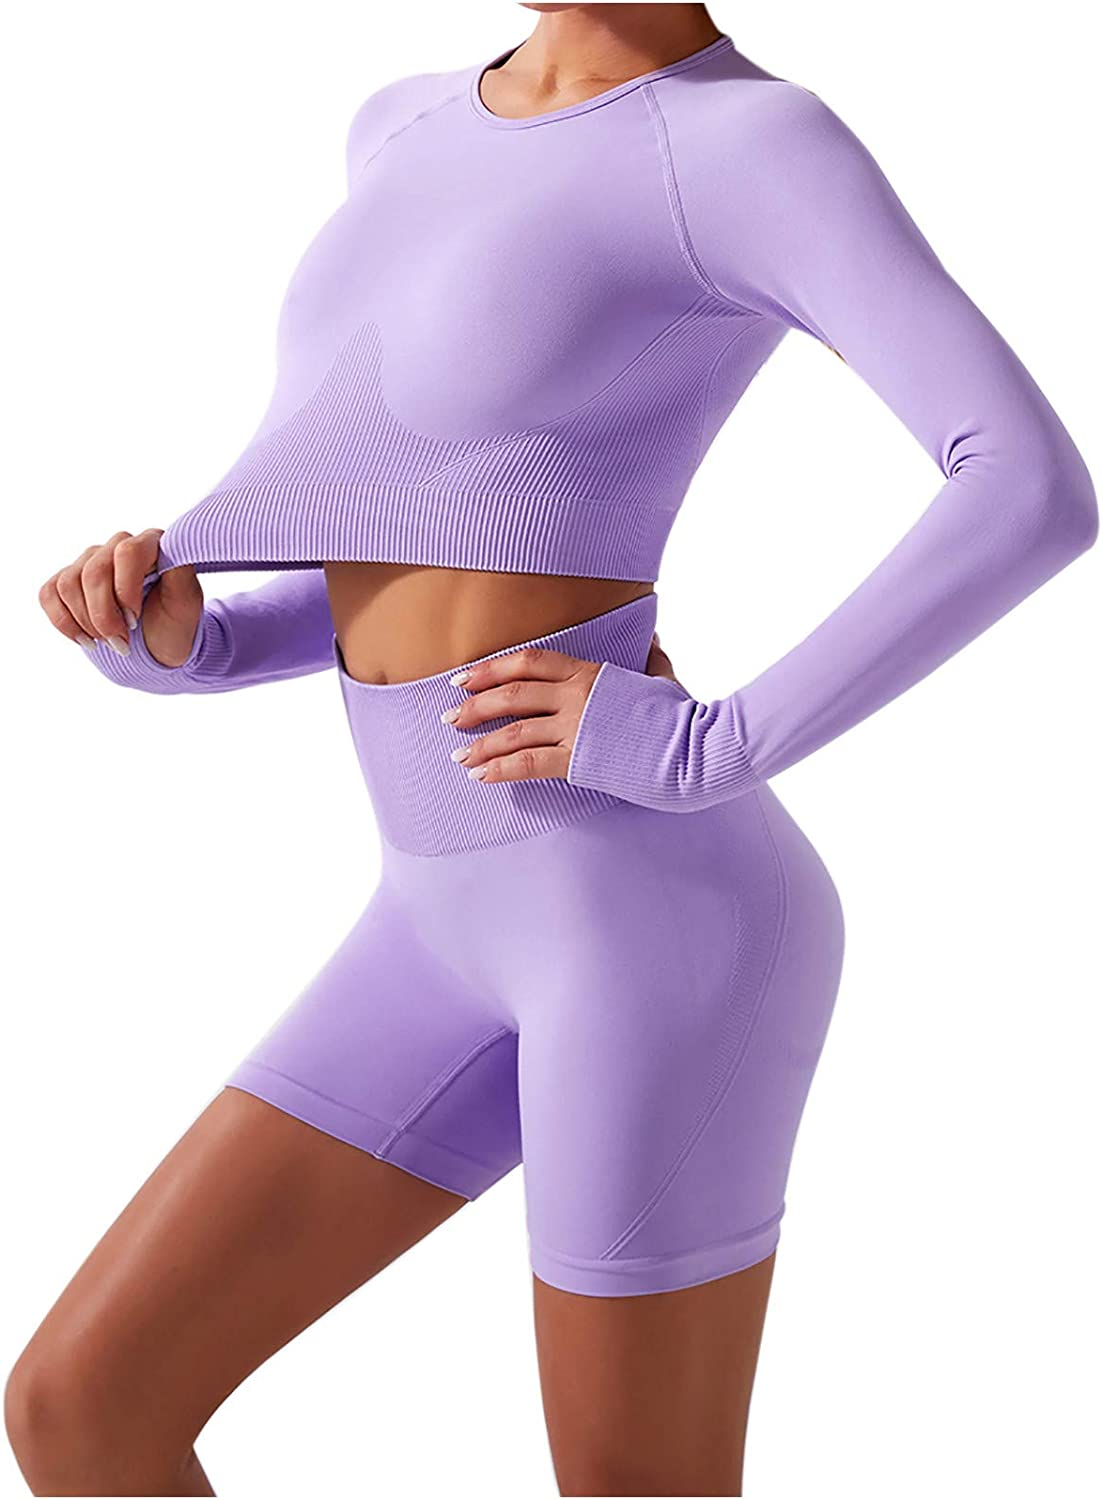 Gwewei4df Women's Yoga Suit Tulsa Mall D Max 76% OFF Running Fitness Quick